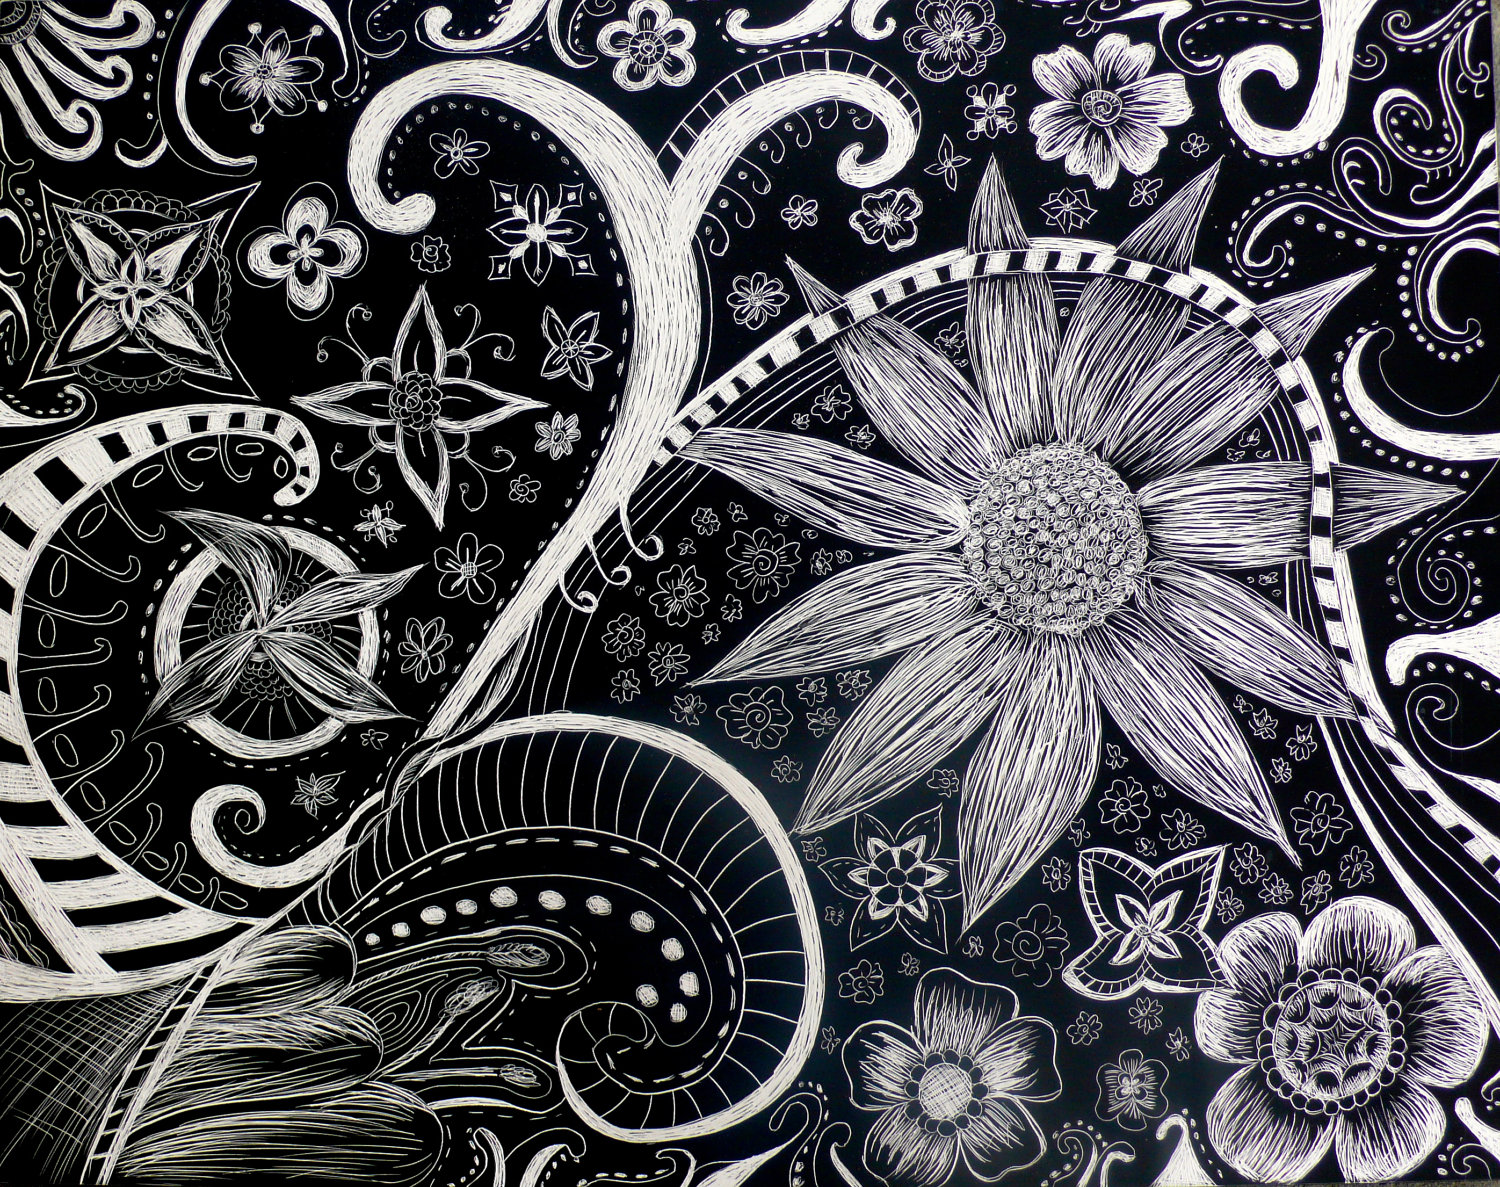 Flowers And Swirls Abstract Scratchboard Drawing Available On Etsy